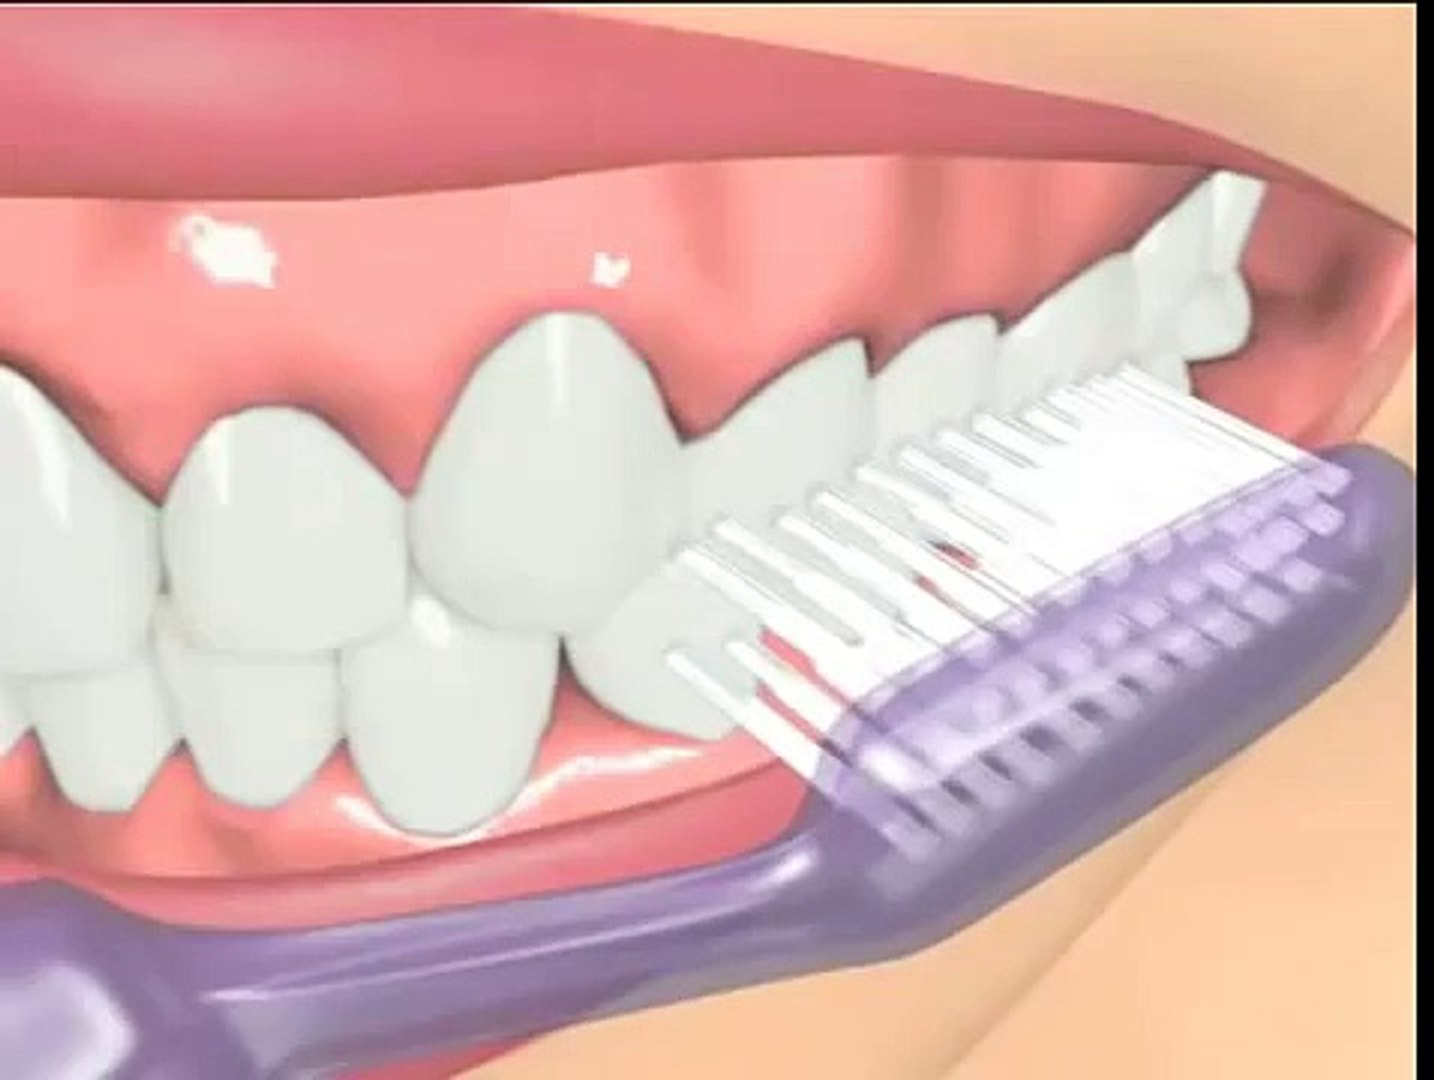 tooth brushing bass technique - video Dailymotion